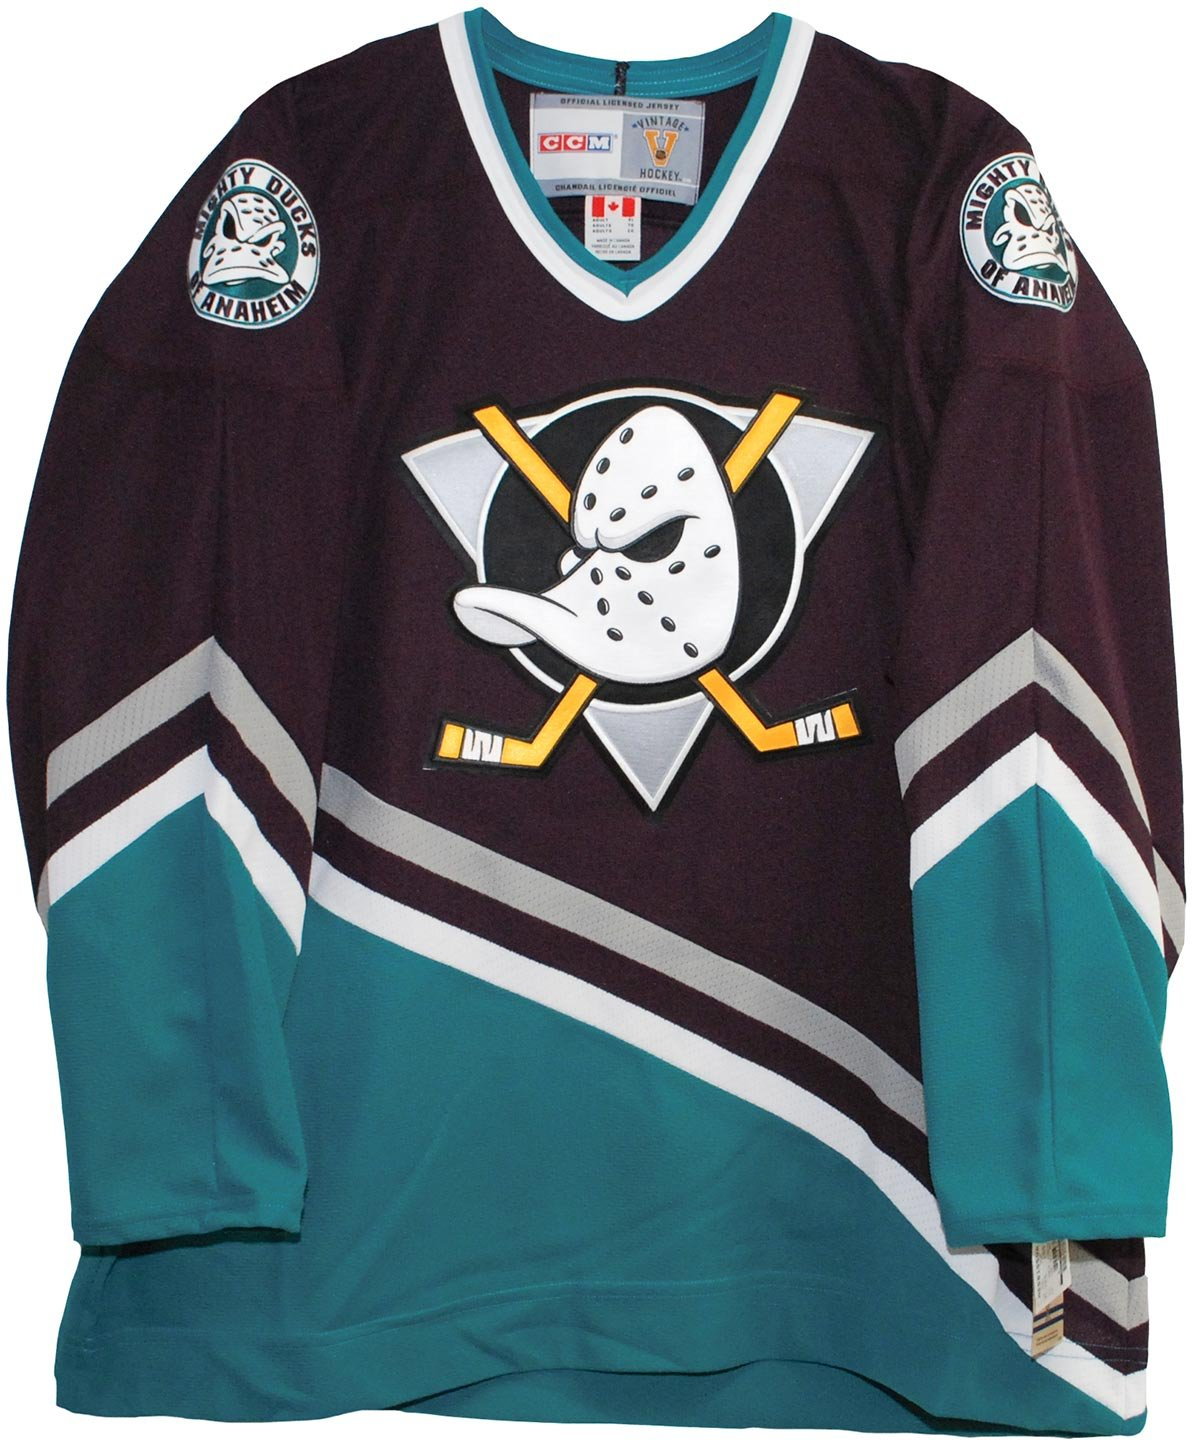 ... Throwback Jersey Amazon.com Vintage Mighty Ducks of Anaheim 1997-2003  Purple Hockey Jersey Sports Outdoors ... 71166a1e2